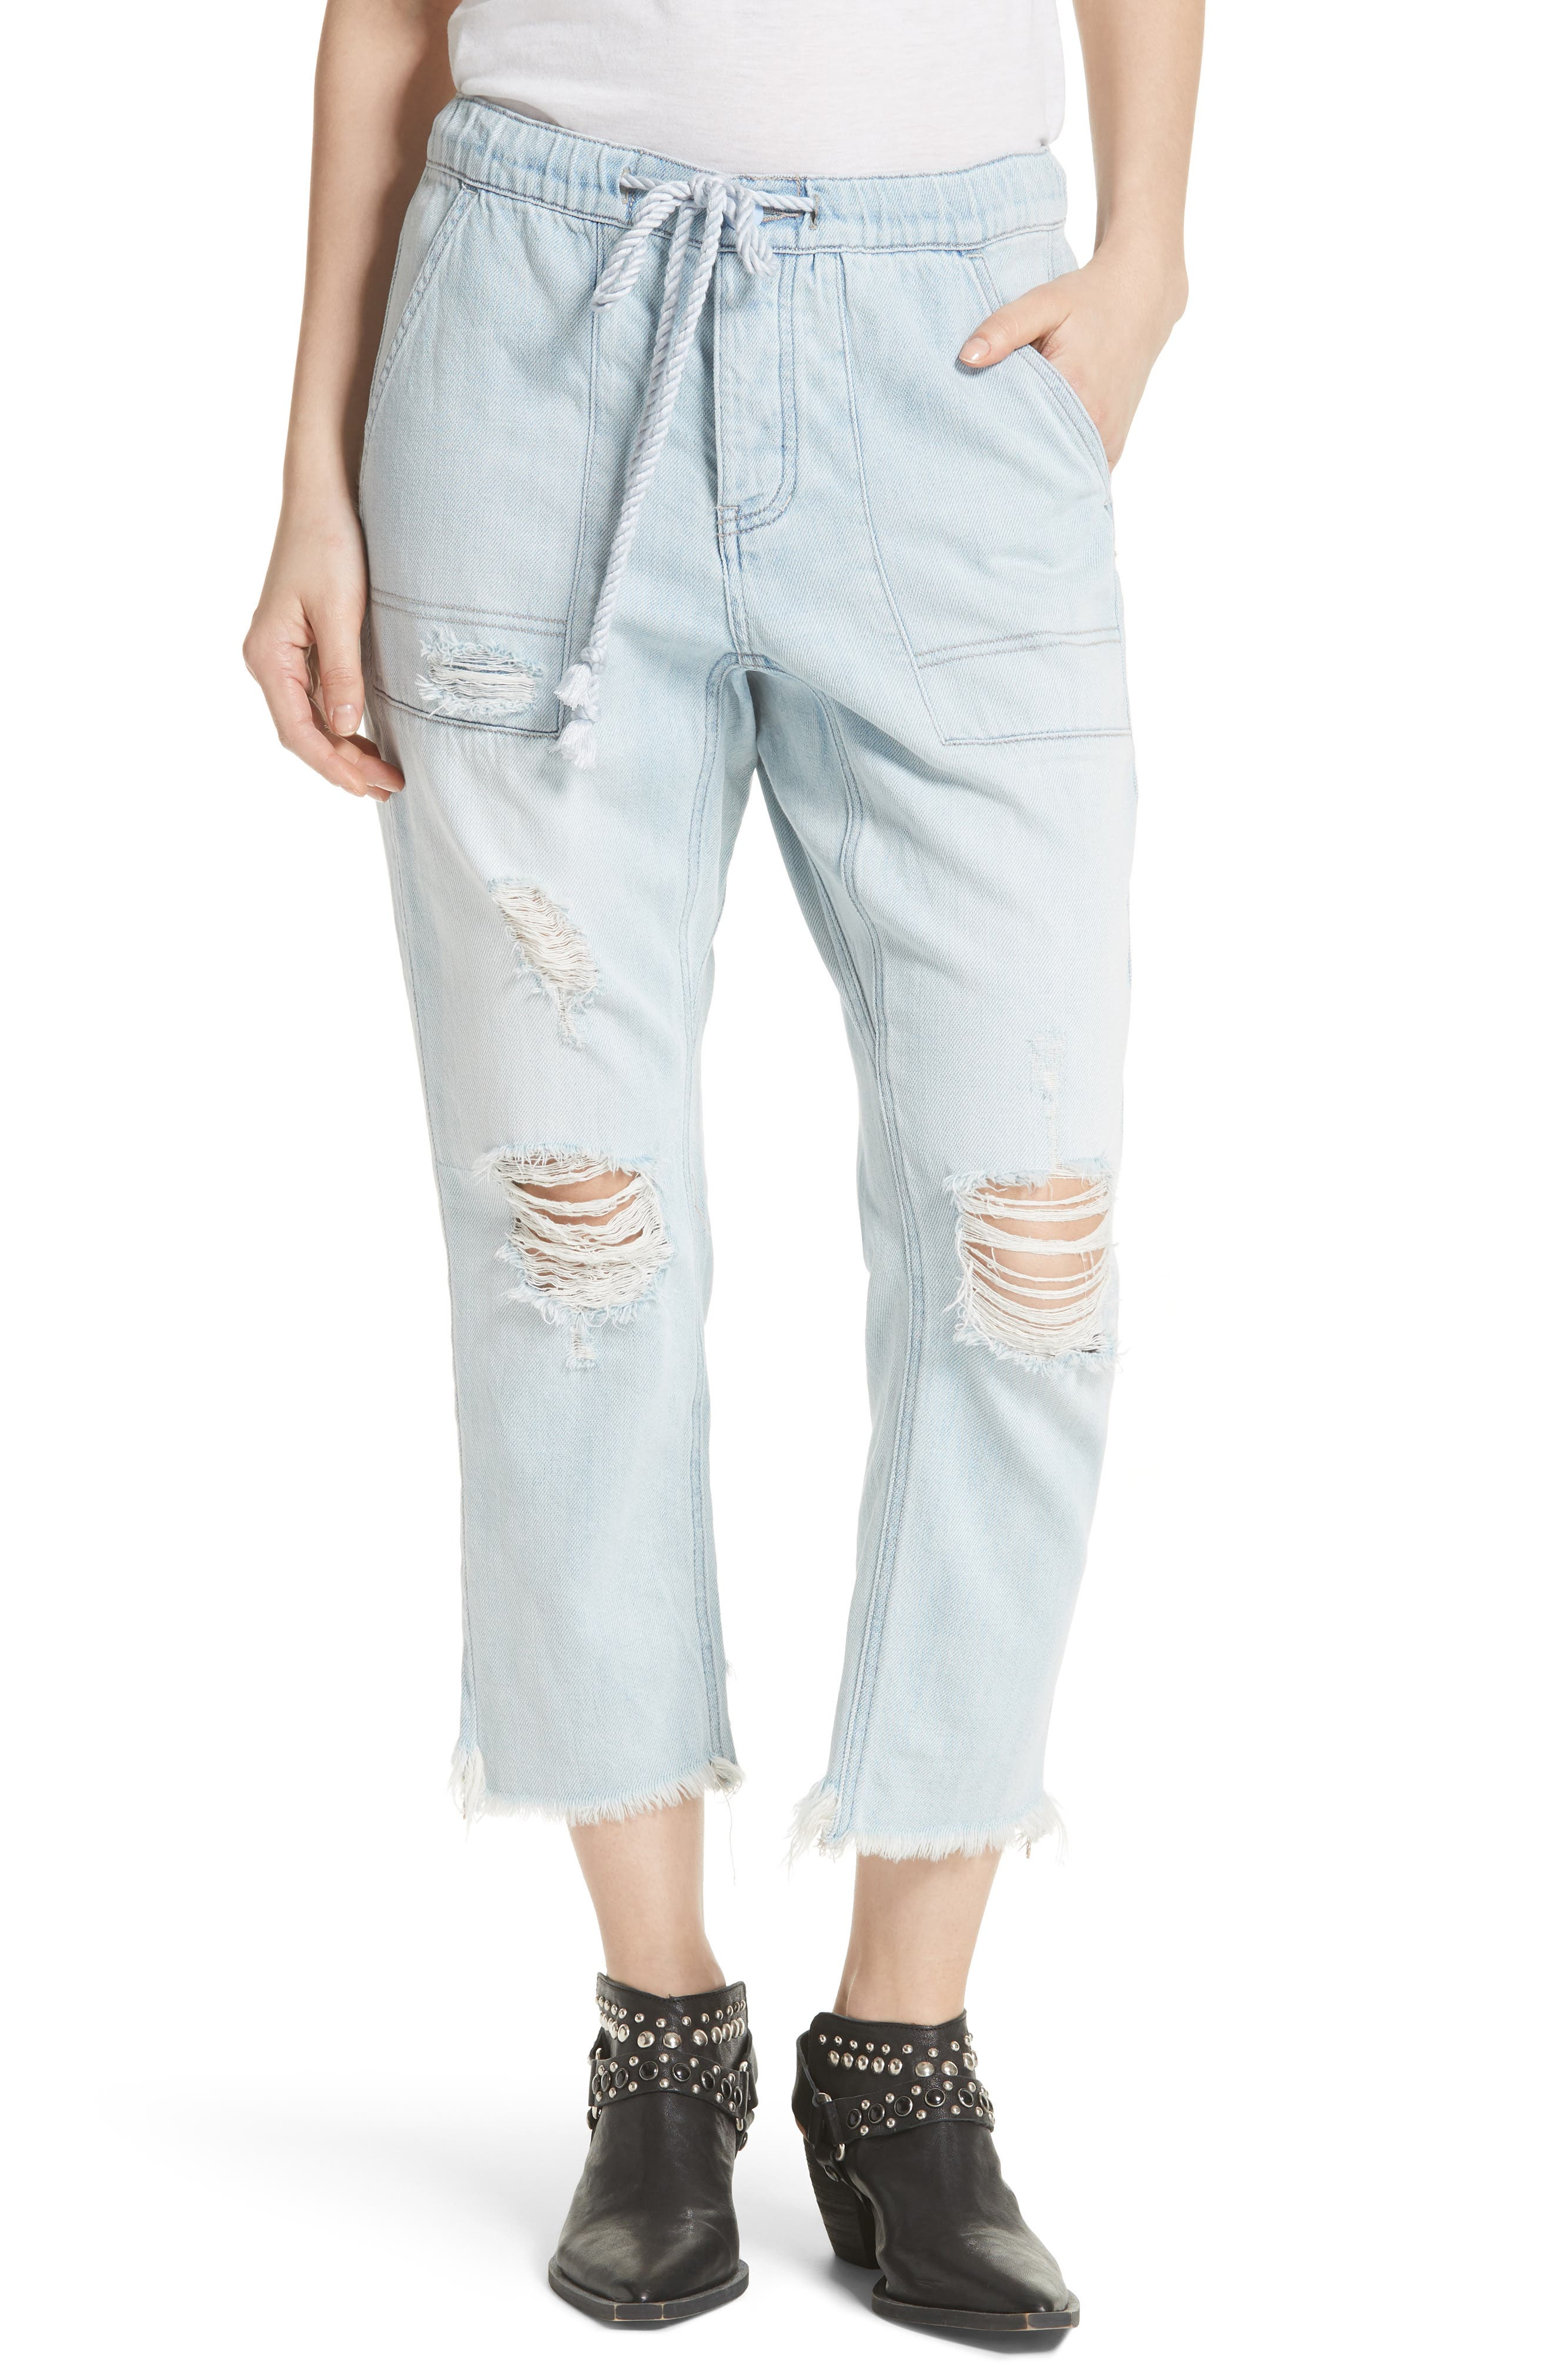 Northern Sky Ripped Crop Jeans,                             Main thumbnail 1, color,                             400